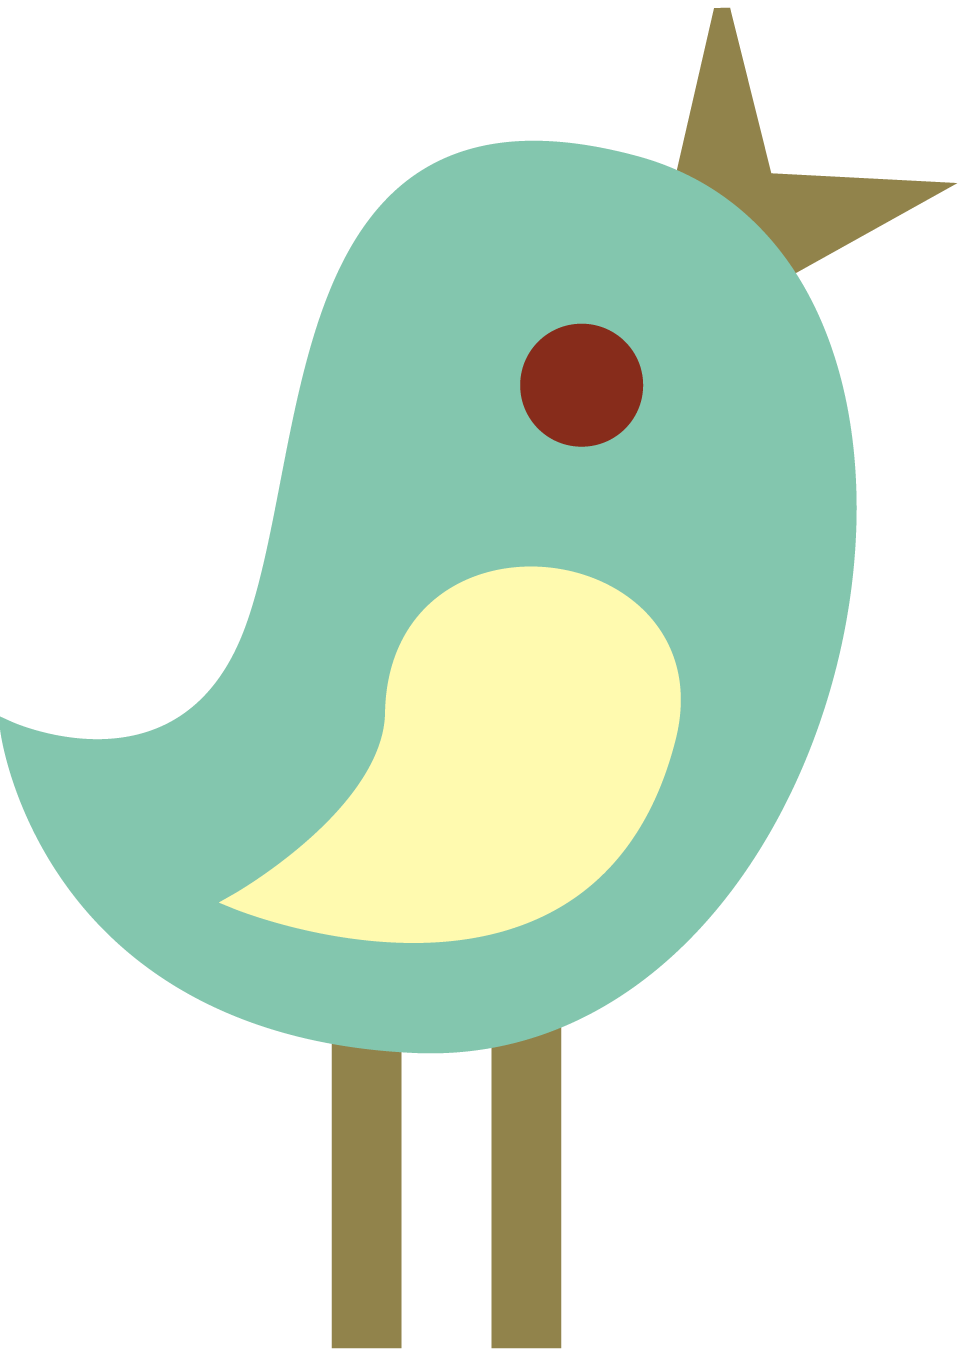 Bird group free download. Geography clipart cute